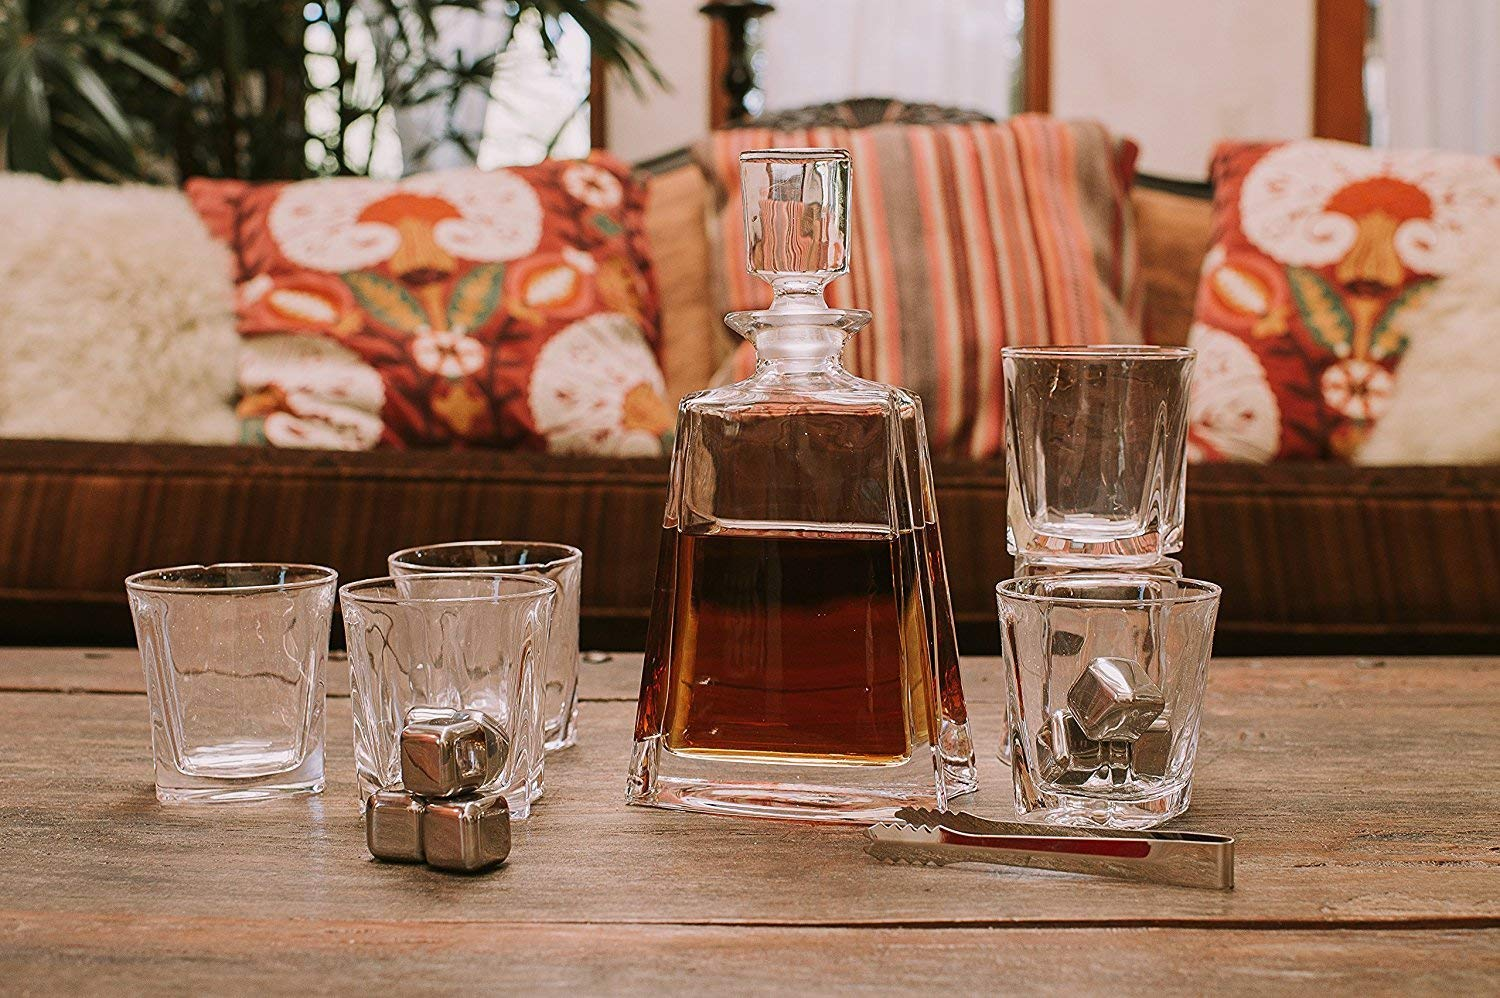 Whiskey Decanter Set by Opul (10 Piece Set) - Includes Crystal Whiskey Glasses Set, Whiskey Stones, Stainless Steel Tray and Tongs - Elegantly Designed to Last the Test of Time by OPUL (Image #7)